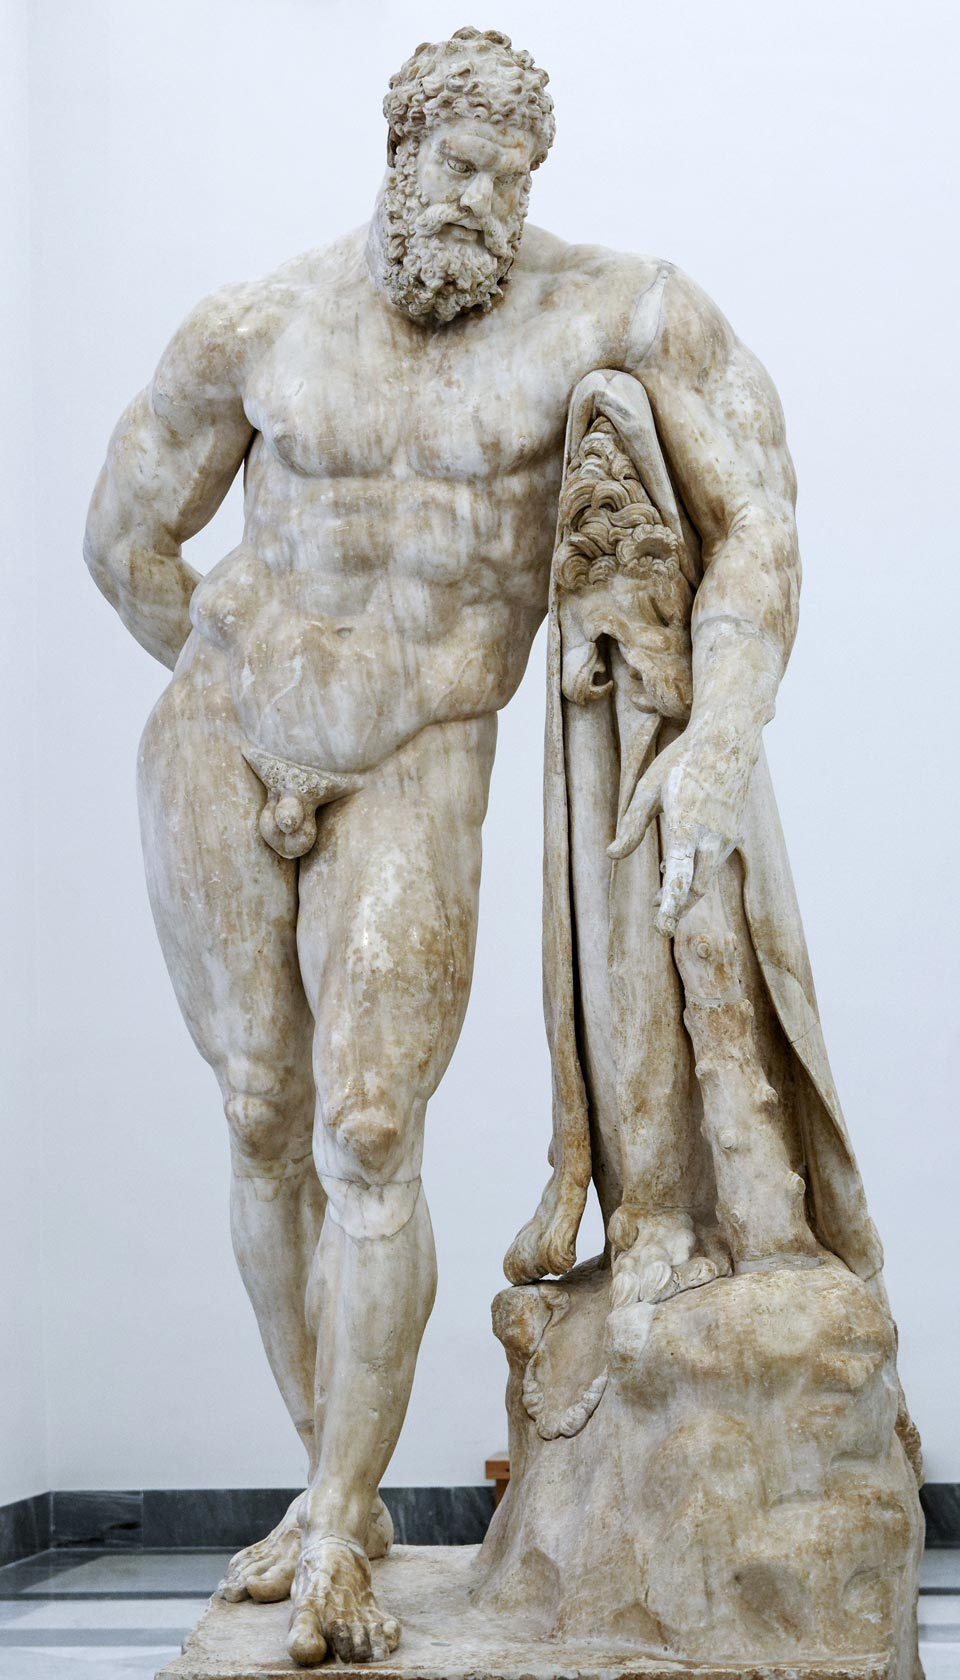 replica of the farnese's hercules of the national archaeological museum of naples in white carrara marble. The huge marble sculpture is now available for sale at bazzanti art gallery florence.